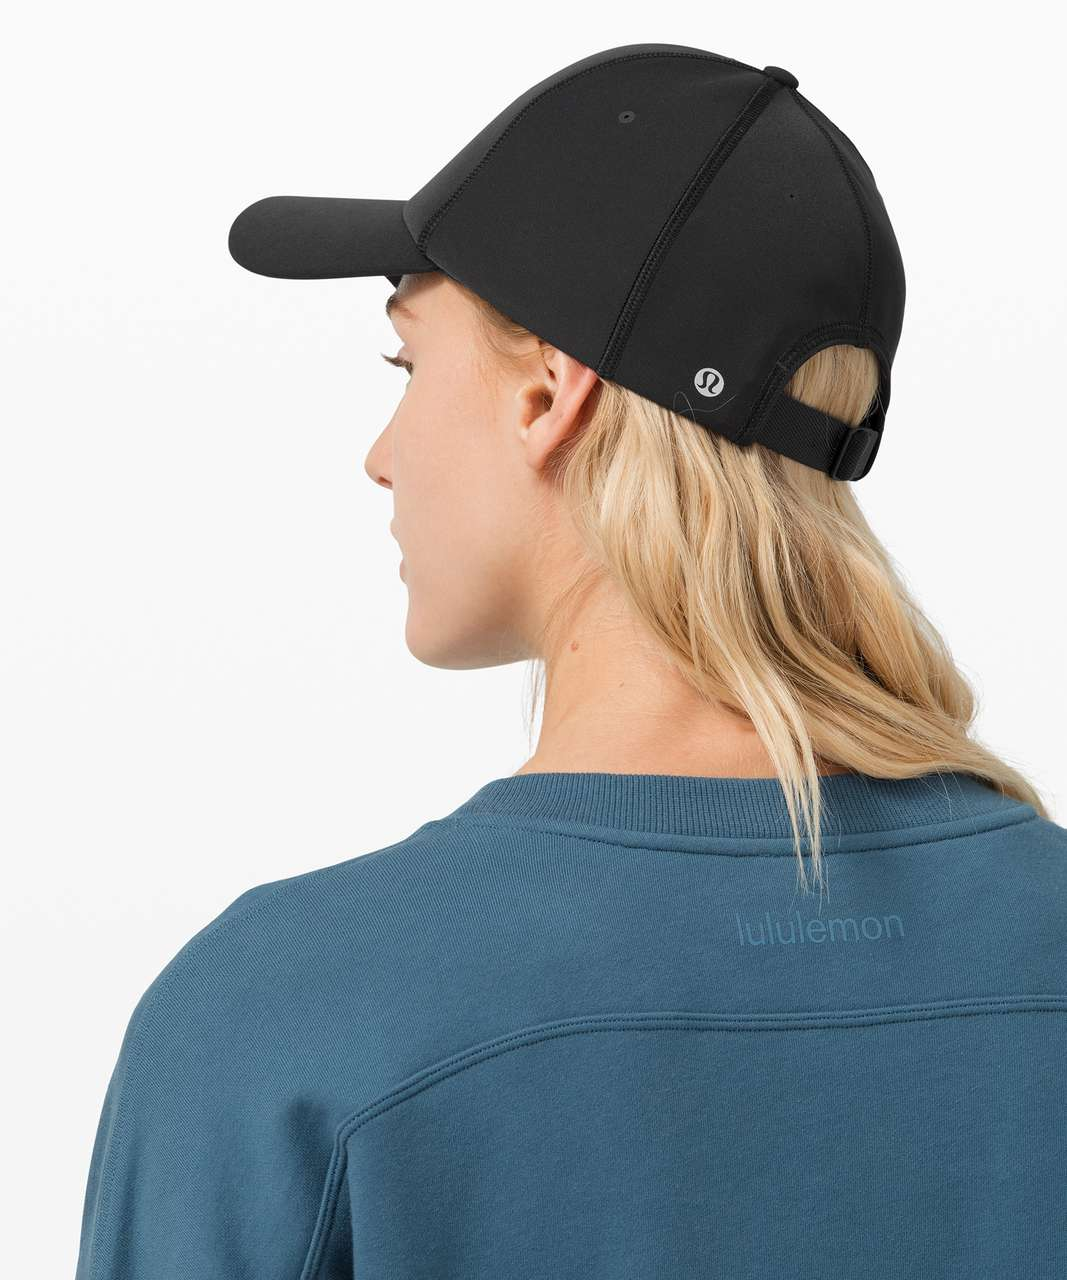 Lululemon Baller Hat - Black